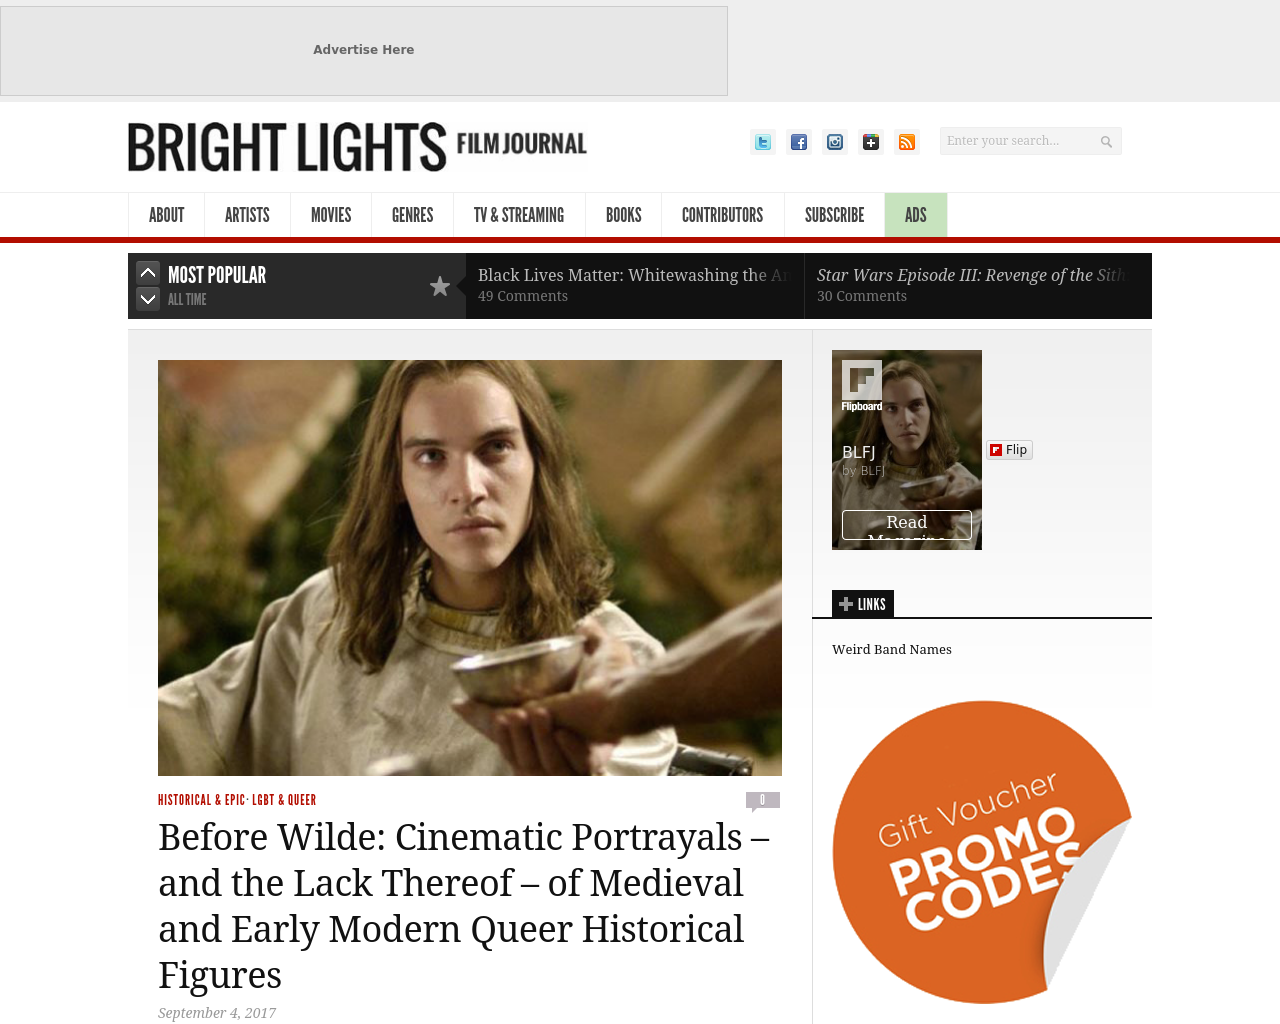 BRIGHT-LIGHTS-FILM-JOURNAL-Advertising-Reviews-Pricing